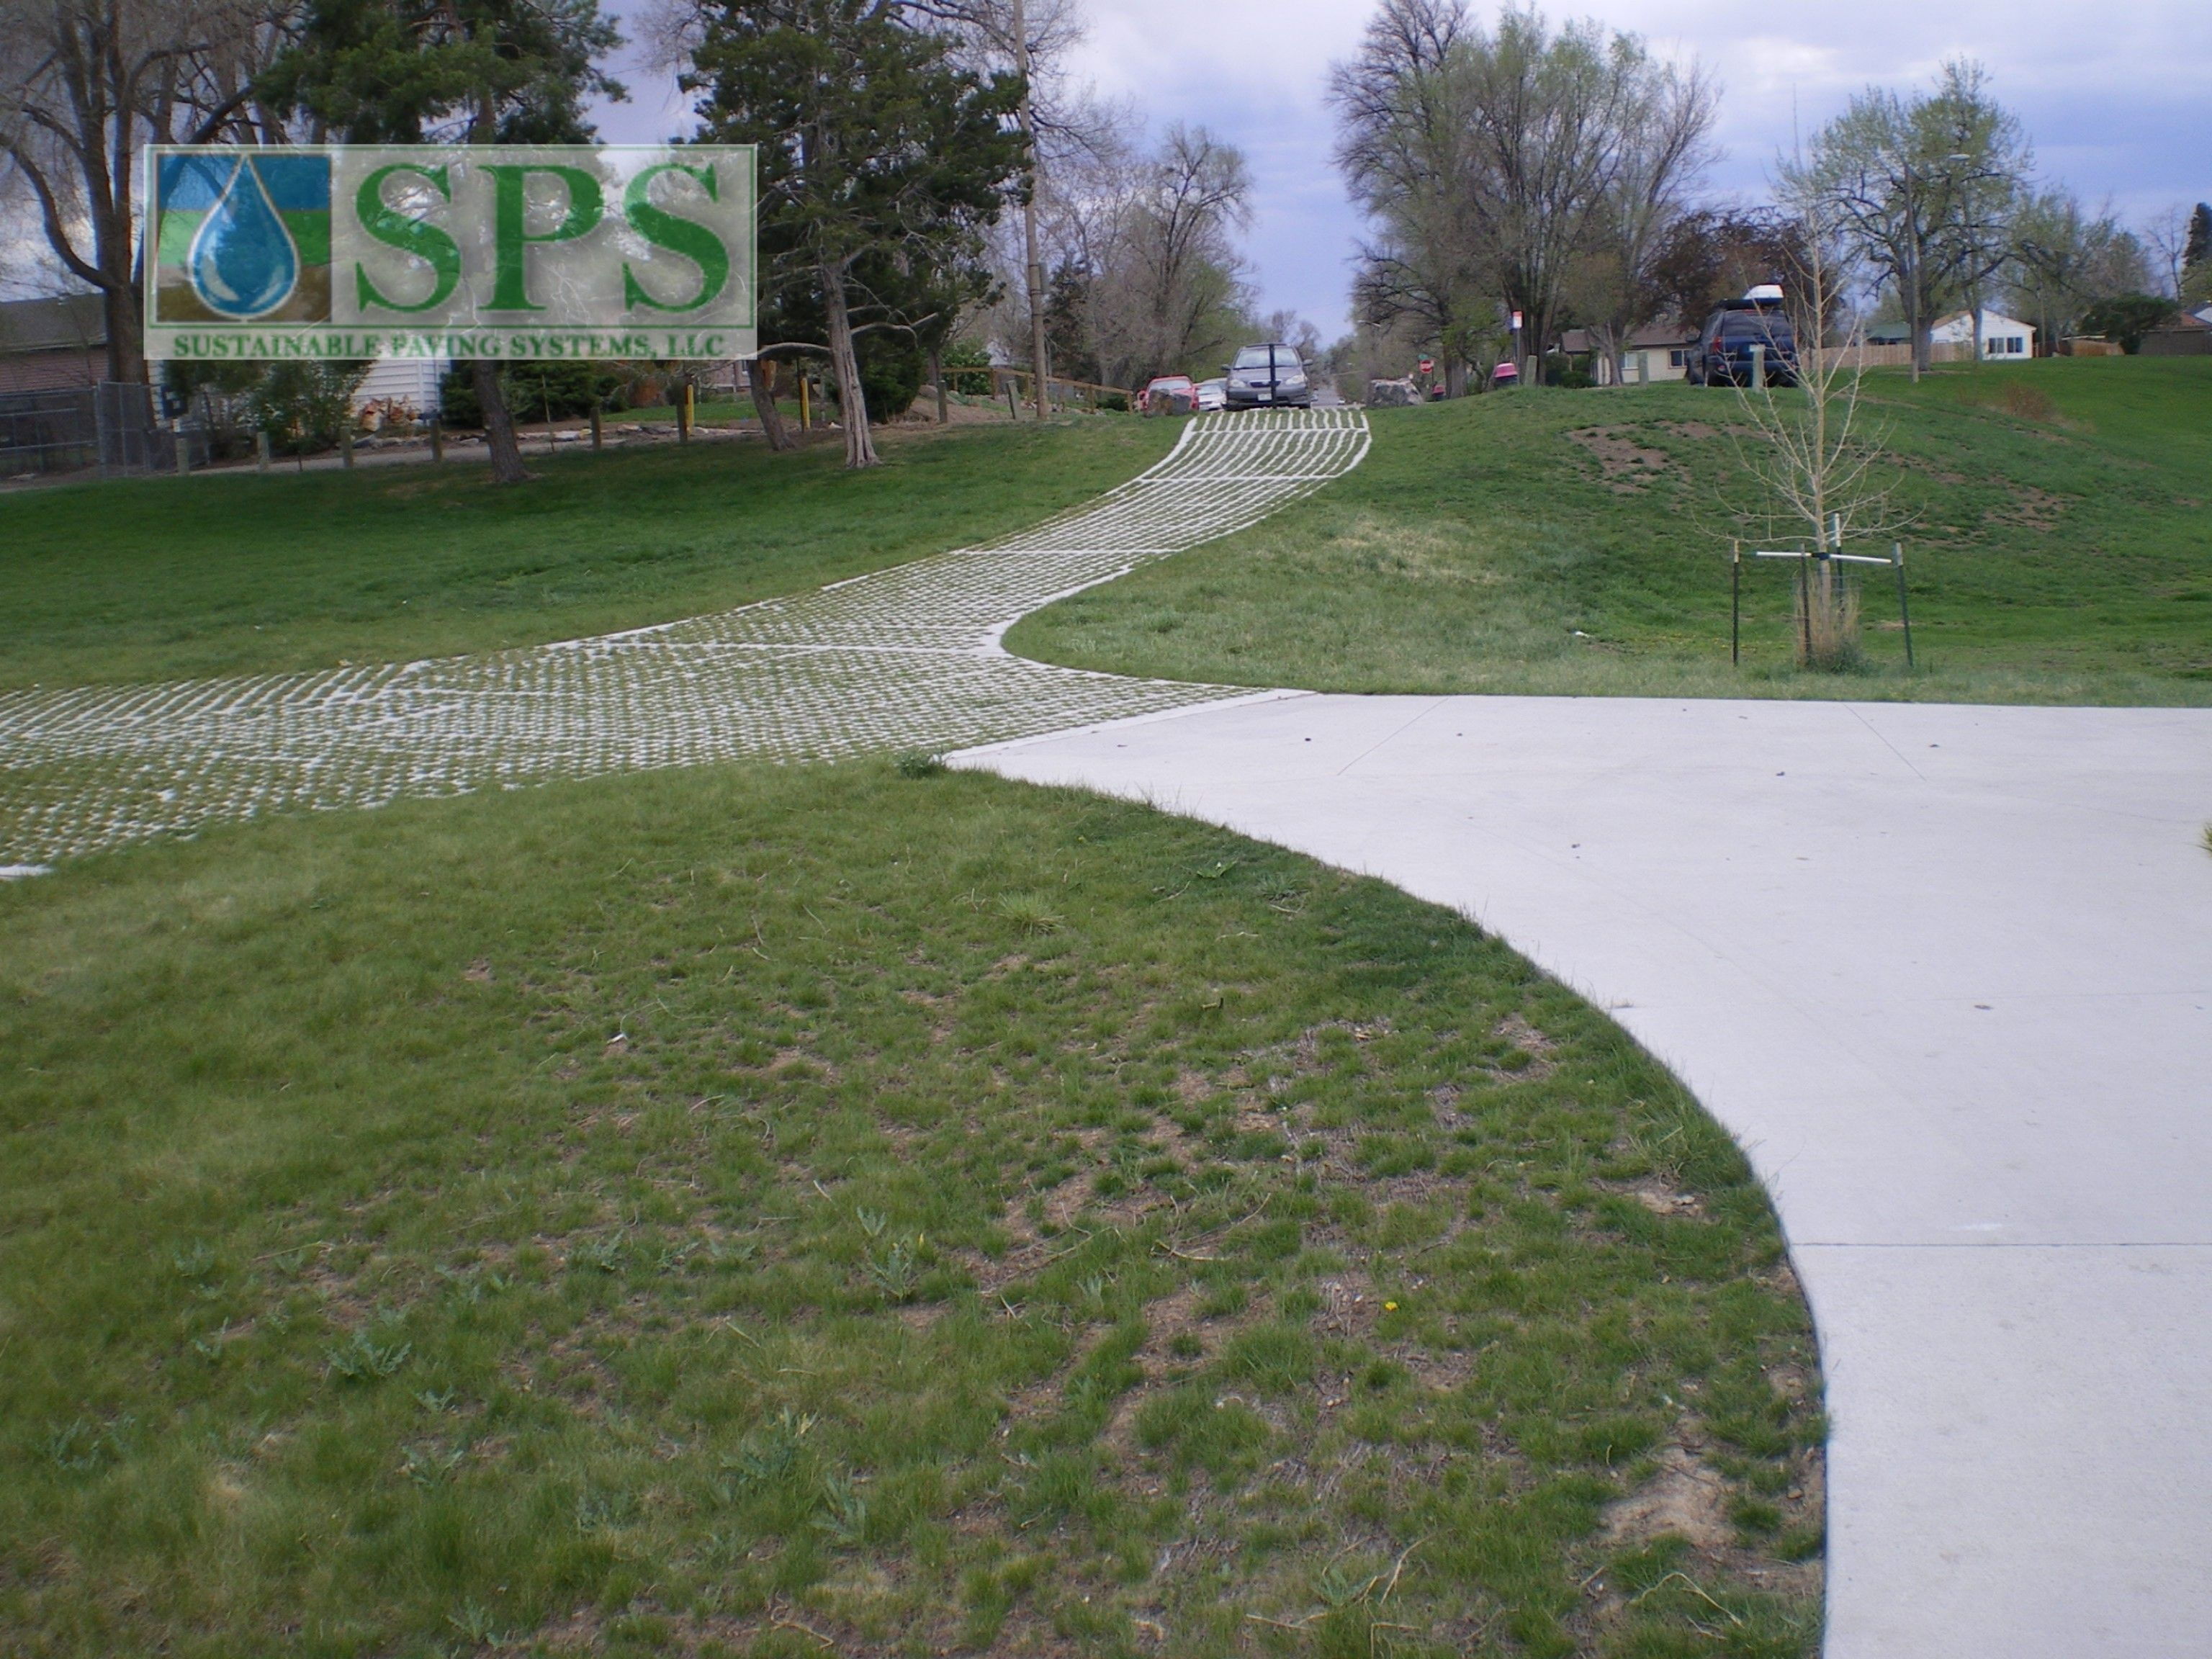 The Grasscrete shown here is a green alternative to typical concrete surfaces, providing a variety of landscape solutions, and alleviating drainage issues while maintaining strong structural integrity.